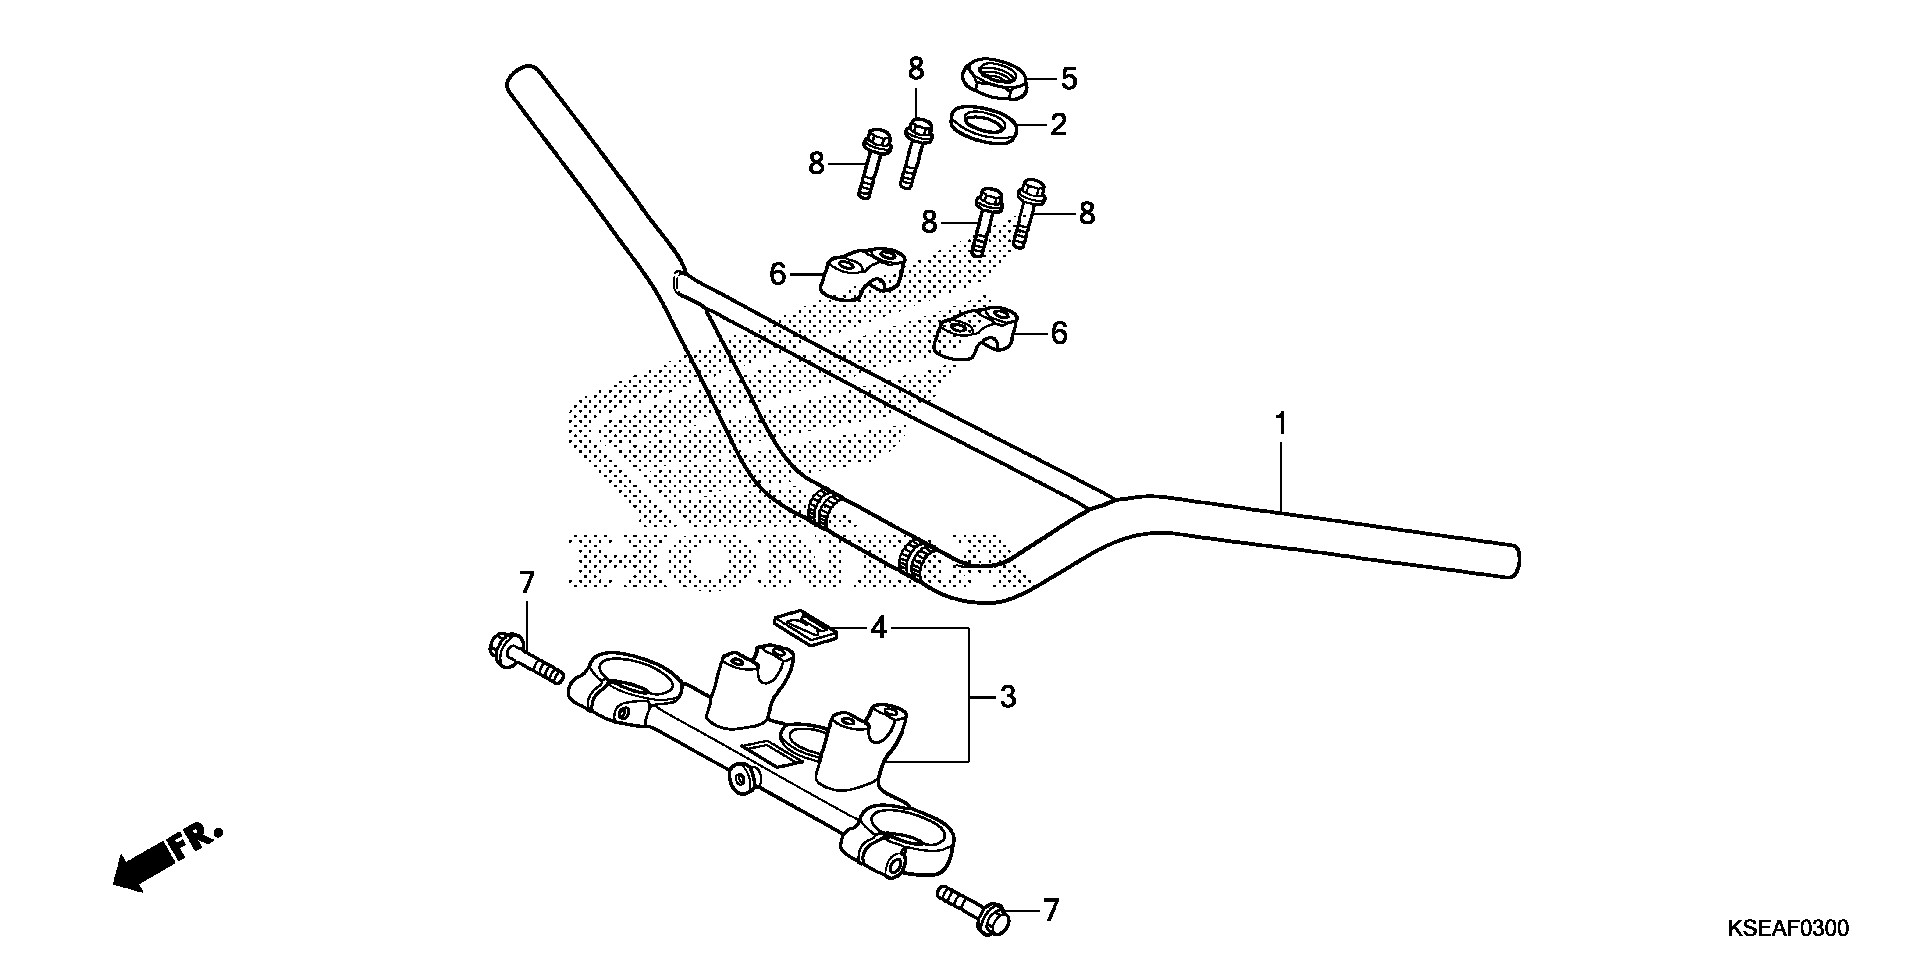 Genuine Toyota 87910-22820-12 Rear View Mirror Assembly